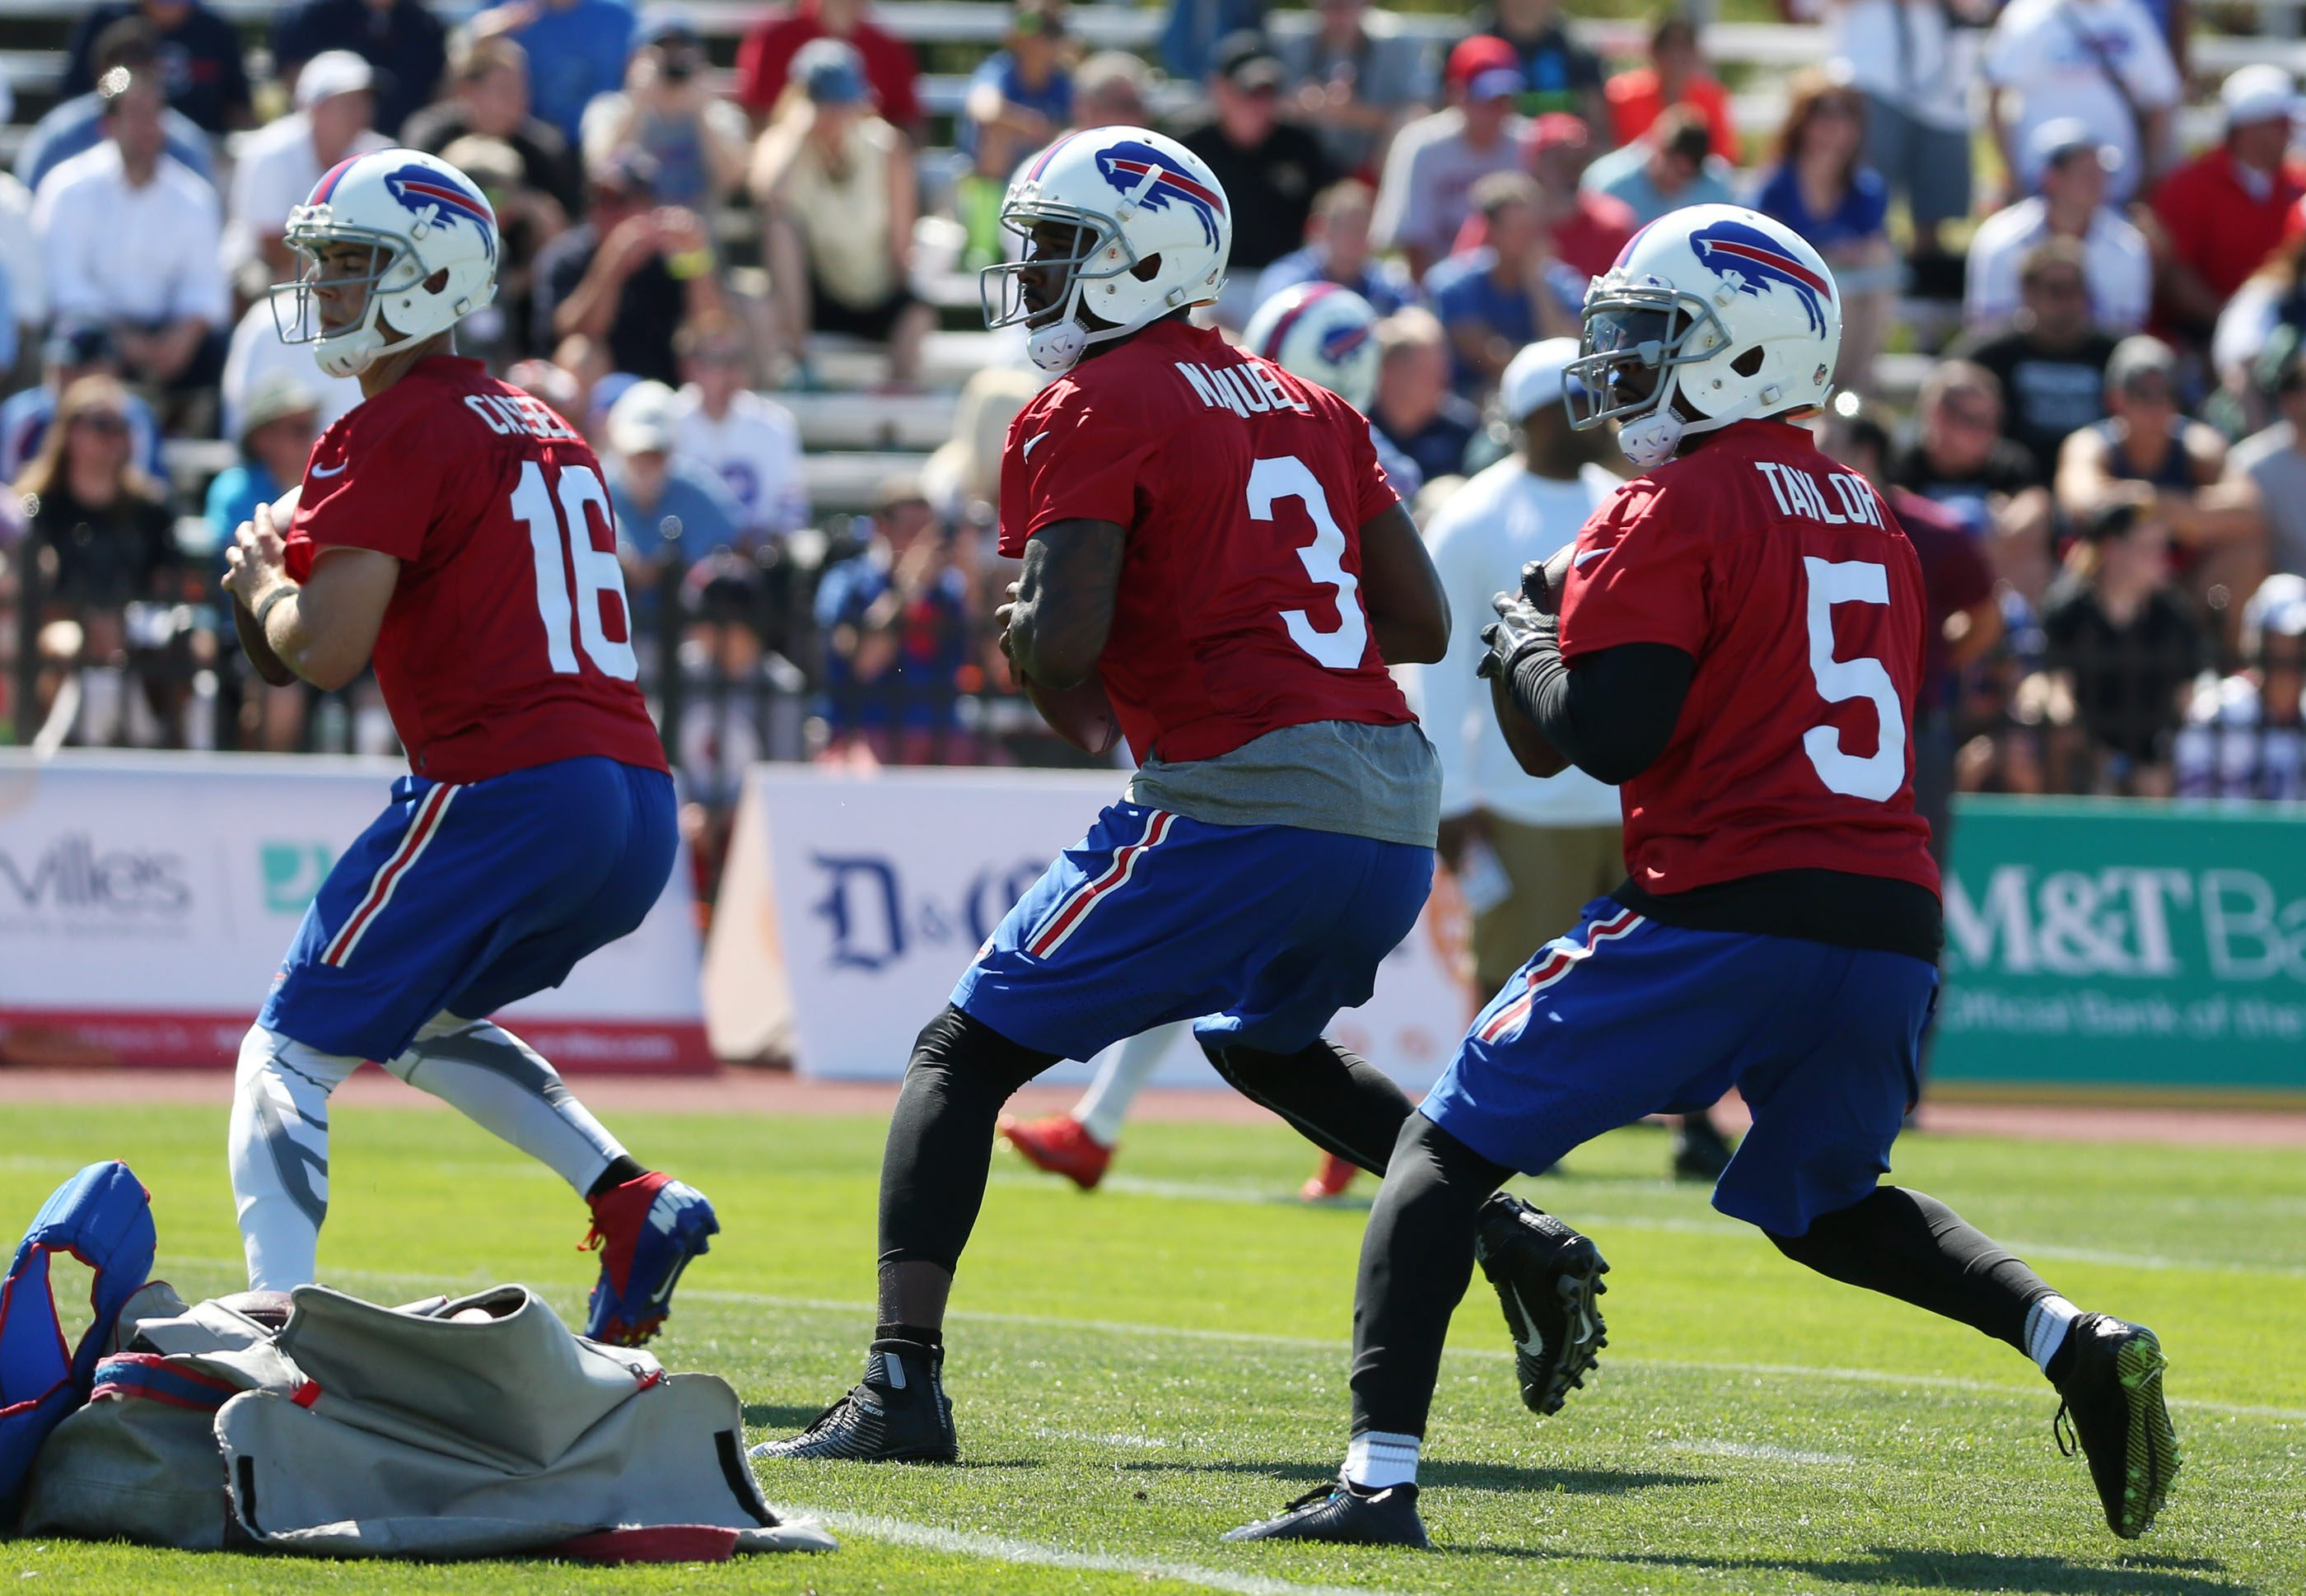 Buffalo Bills quarterbacks Matt Cassel (16), EJ Manuel (3) and Tyrod Taylor (5) practice their footwork during a drill during Friday's first day of training camp at St. John Fisher College. (James P. McCoy/ Buffalo News)